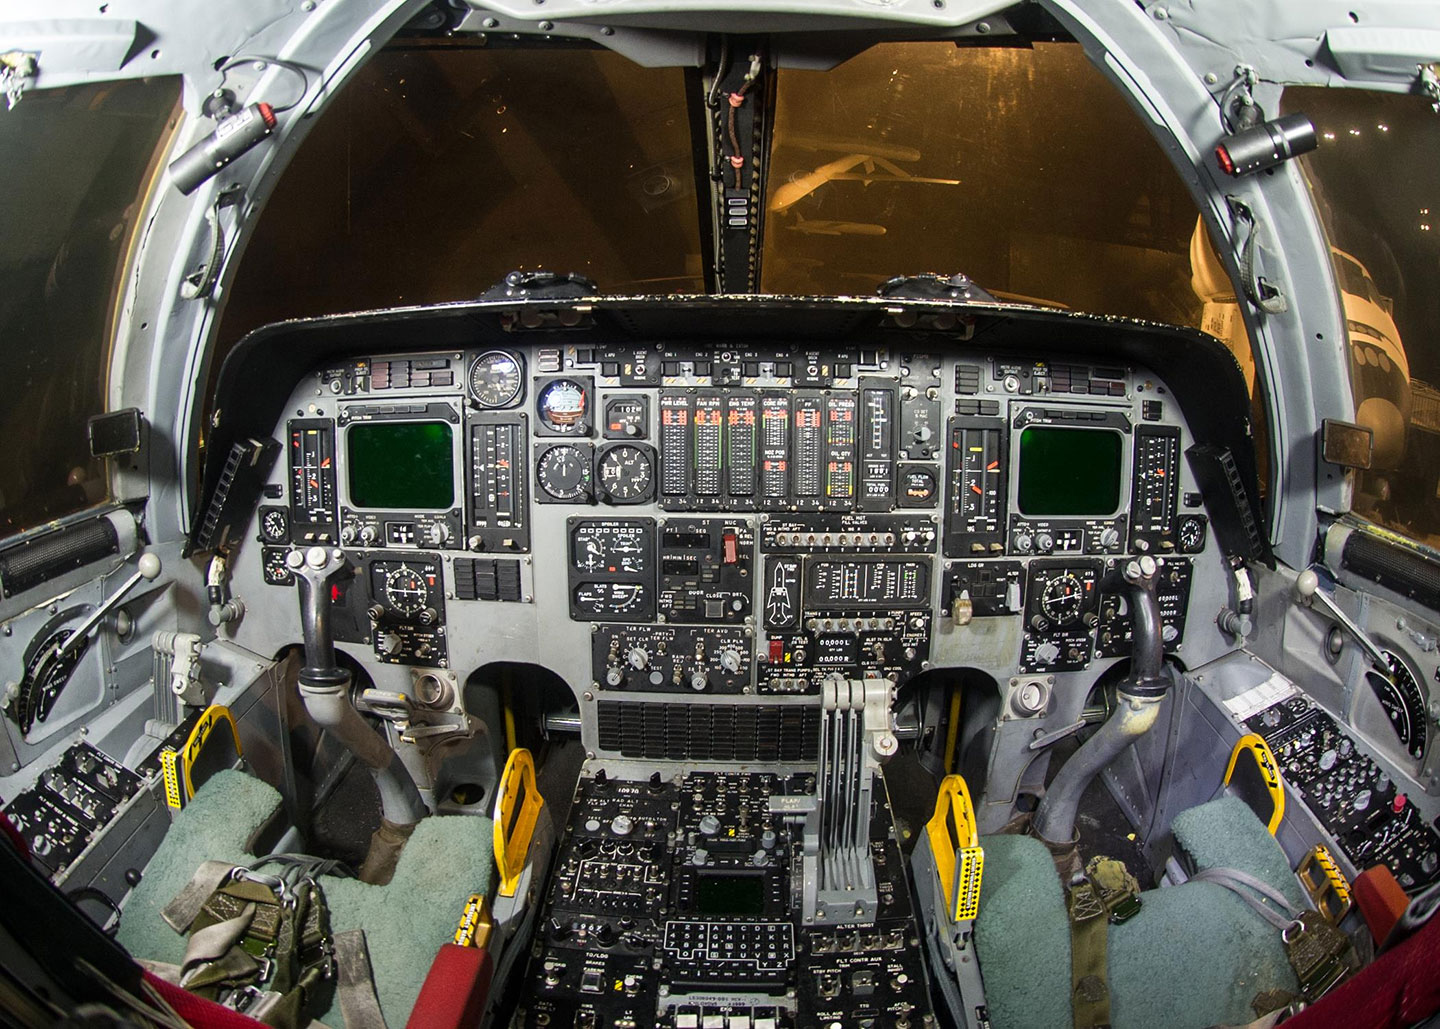 B1 Bomber cockpit tour given in Persian Gulf by USAF crew member